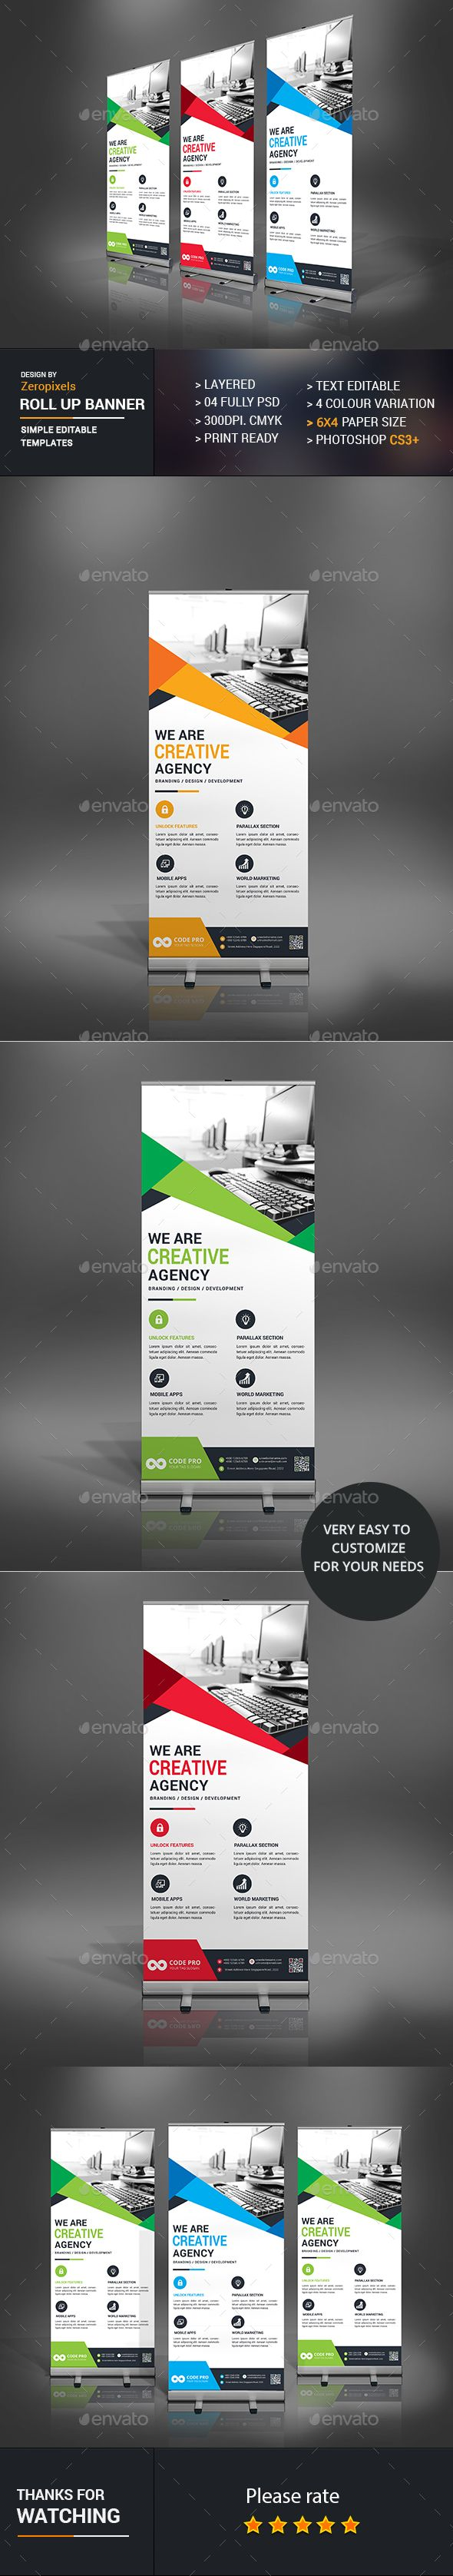 Design a banner to print - Roll Up Banner Design Template Signage Print Template Psd Download Here Http